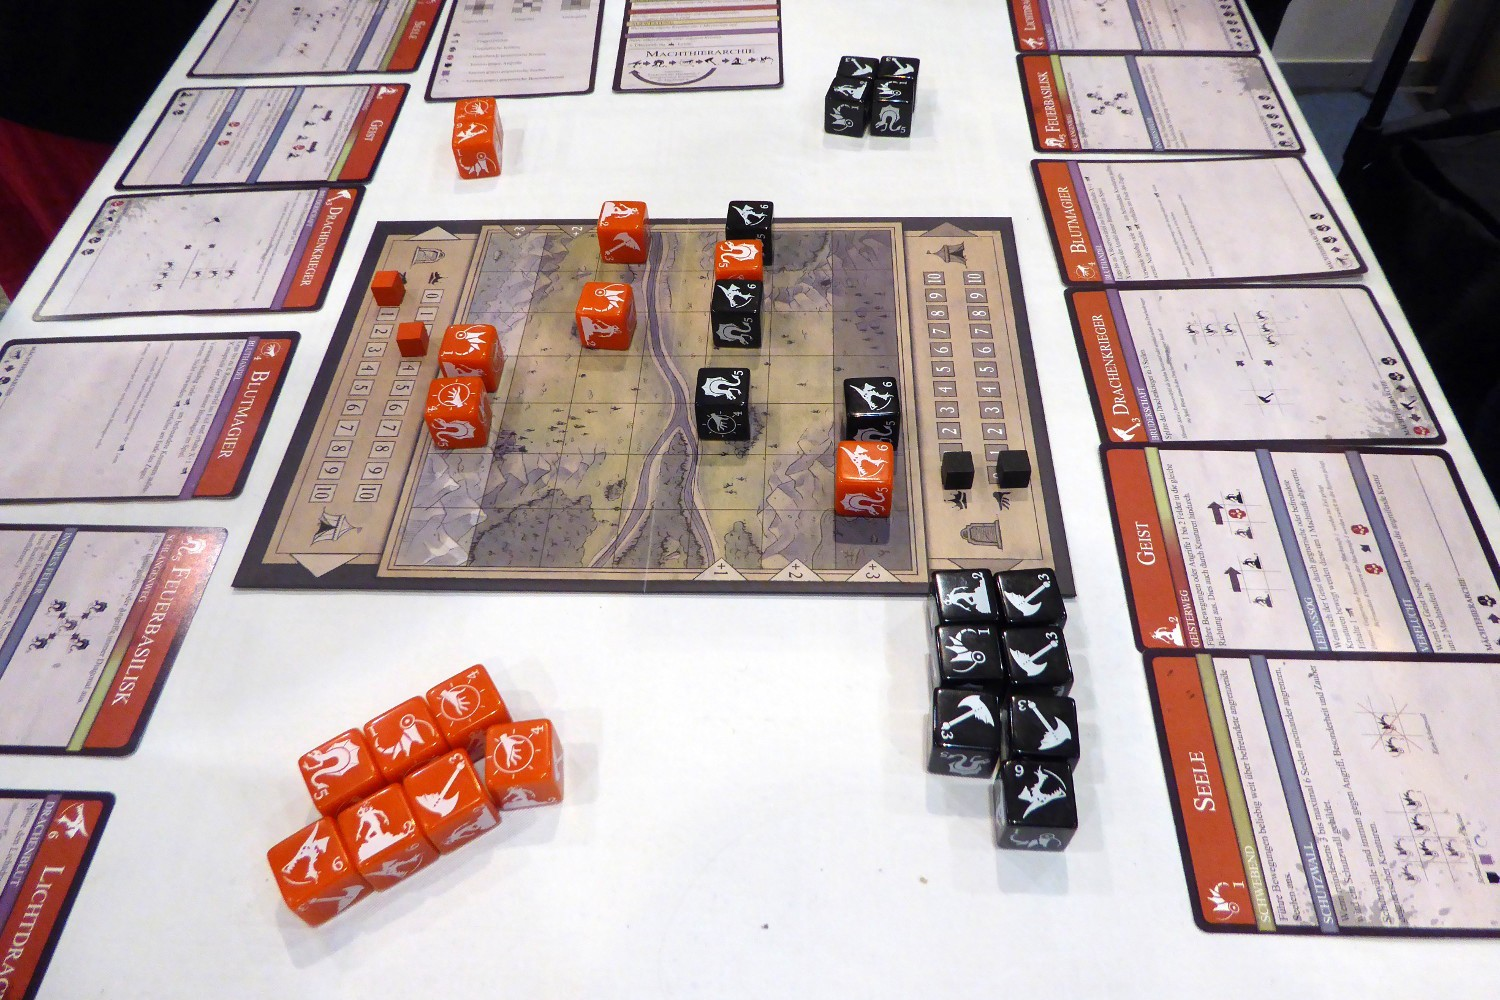 Keeping encodings simple: color hue, shape, and position along axis (DiceWar—Light of Dragons by SunCoreGames)